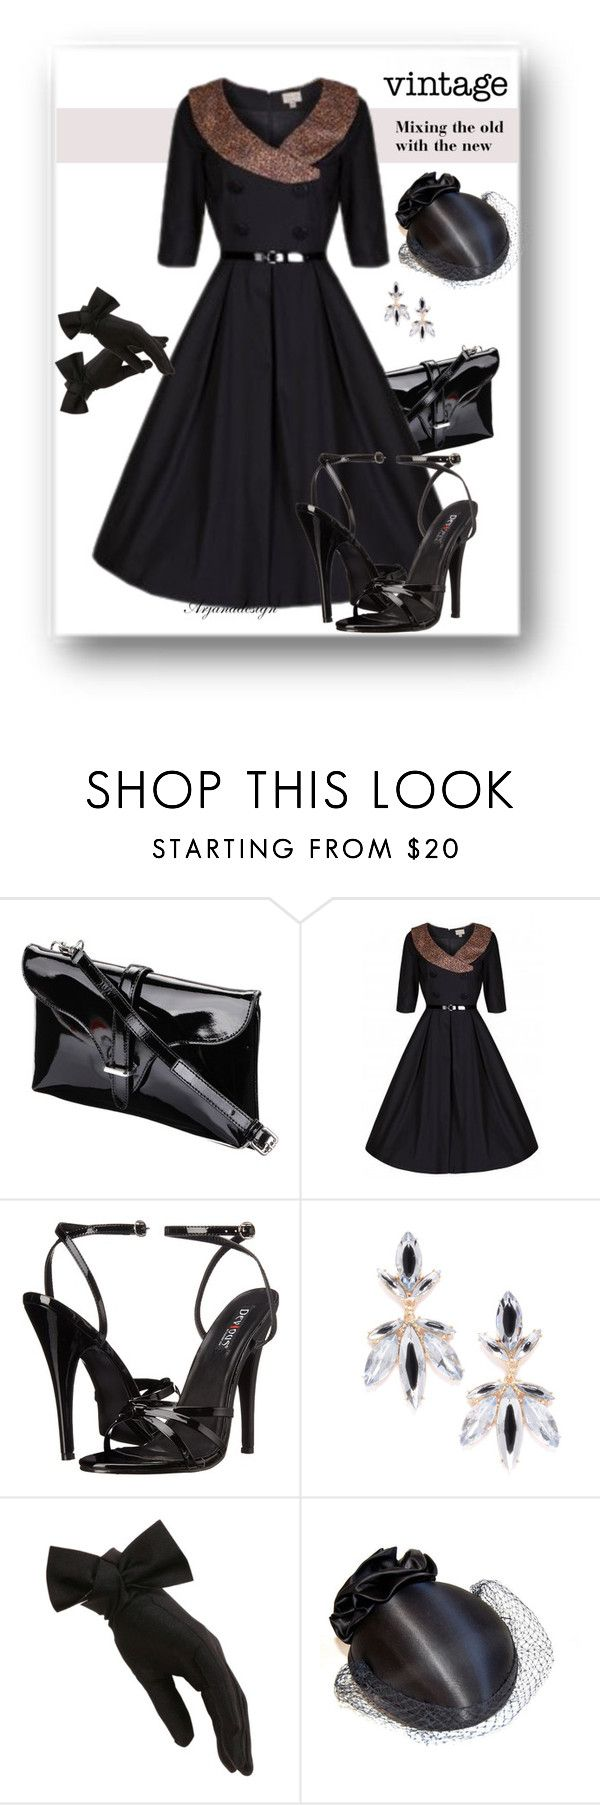 """""""WHAT I WOULD WEAR VINTAGE"""" by arjanadesign ❤ liked on Polyvore featuring Domina, Jeweliq, Black and vintage"""